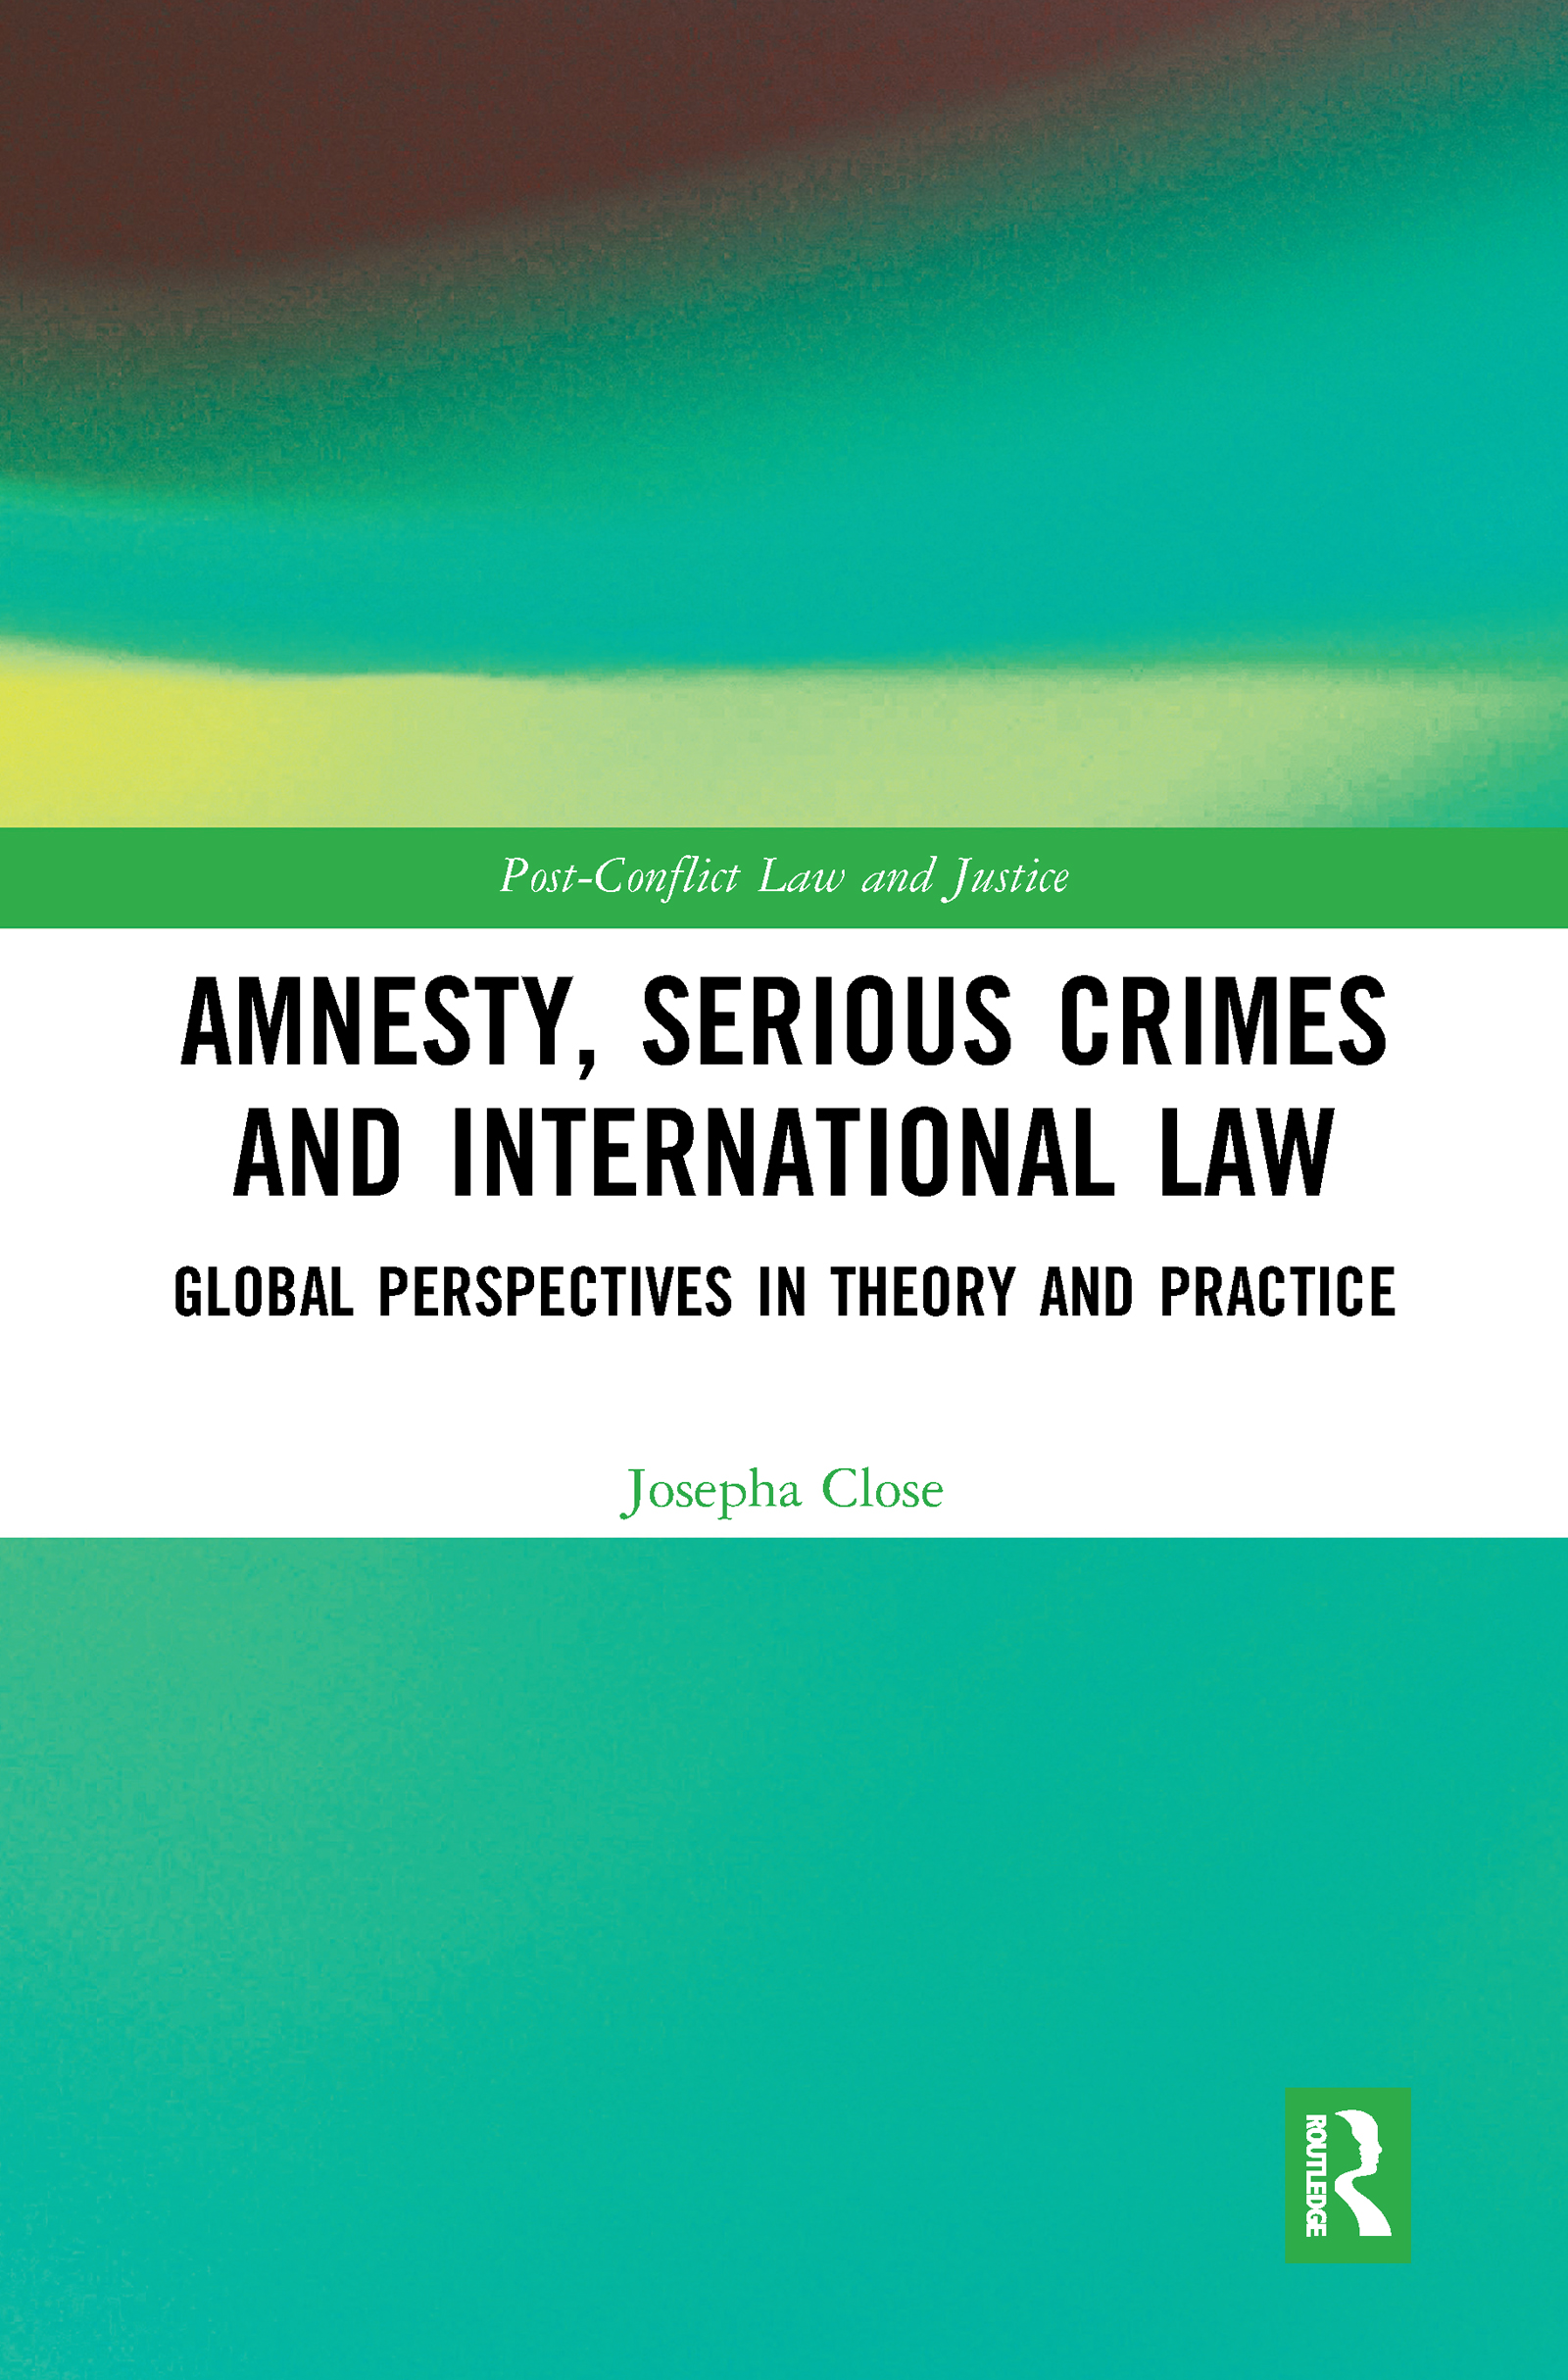 Amnesty, Serious Crimes and International Law